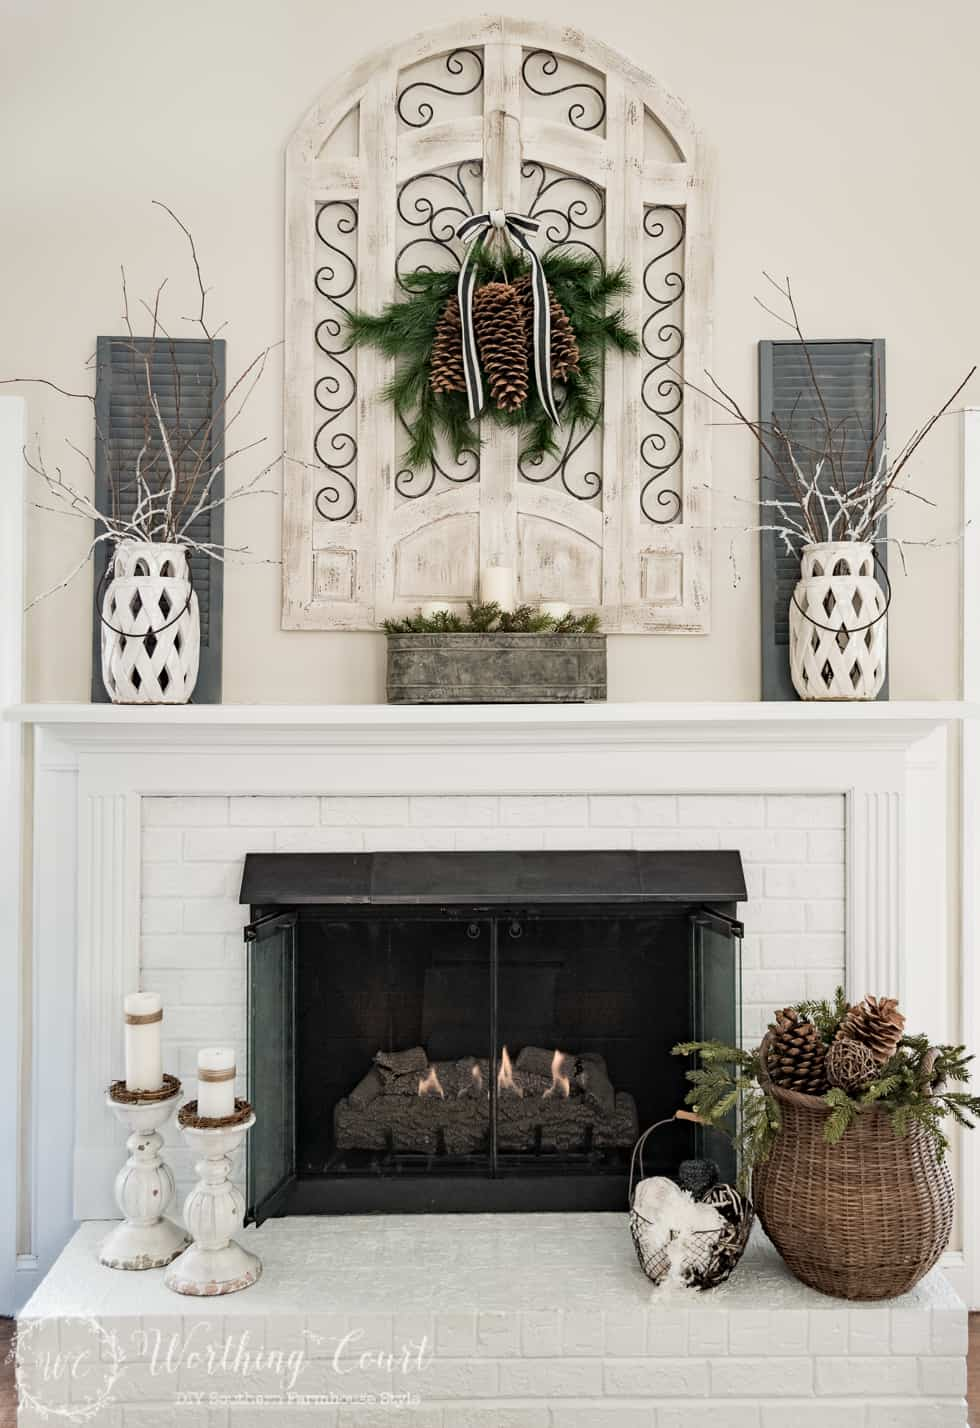 Vintage Christmas Mantel Decorations : My winter fireplace mantel and hearth worthing court